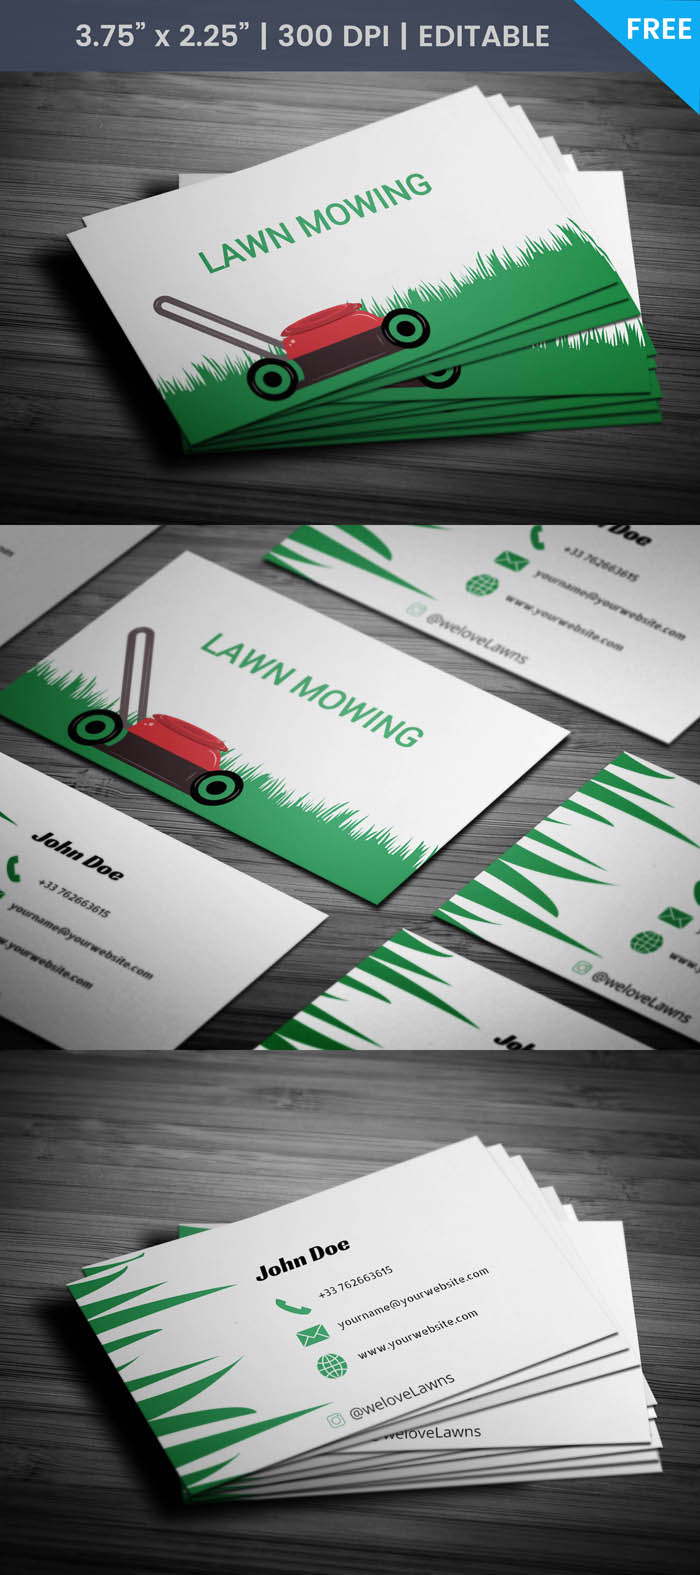 Free Lawn Mowing Business Card Template